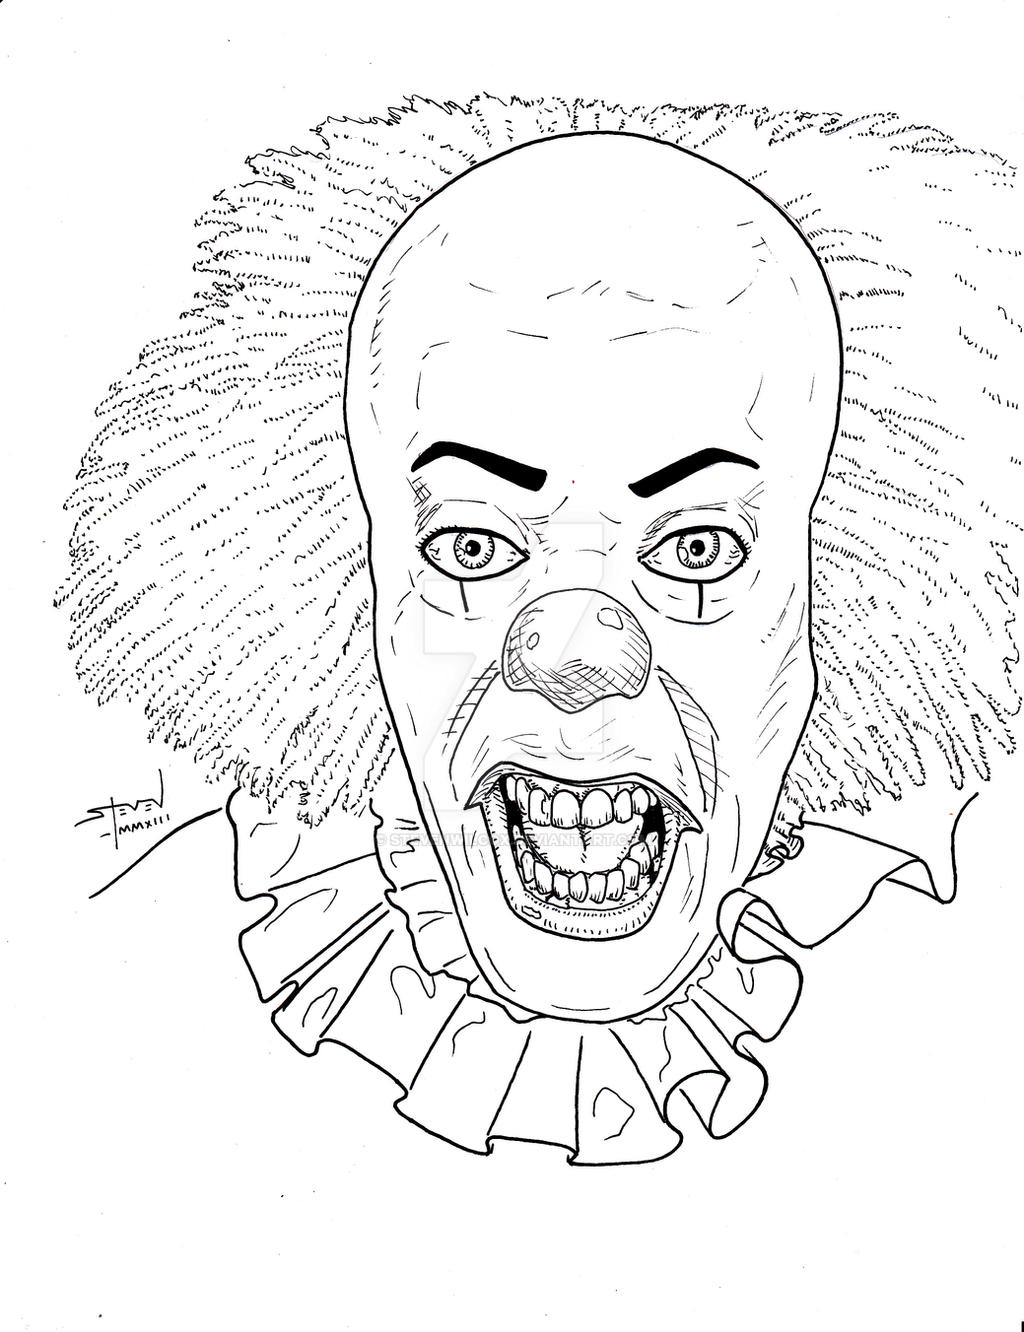 Pennywise the clown by stevenwilcox on deviantart for Clowns coloring pages